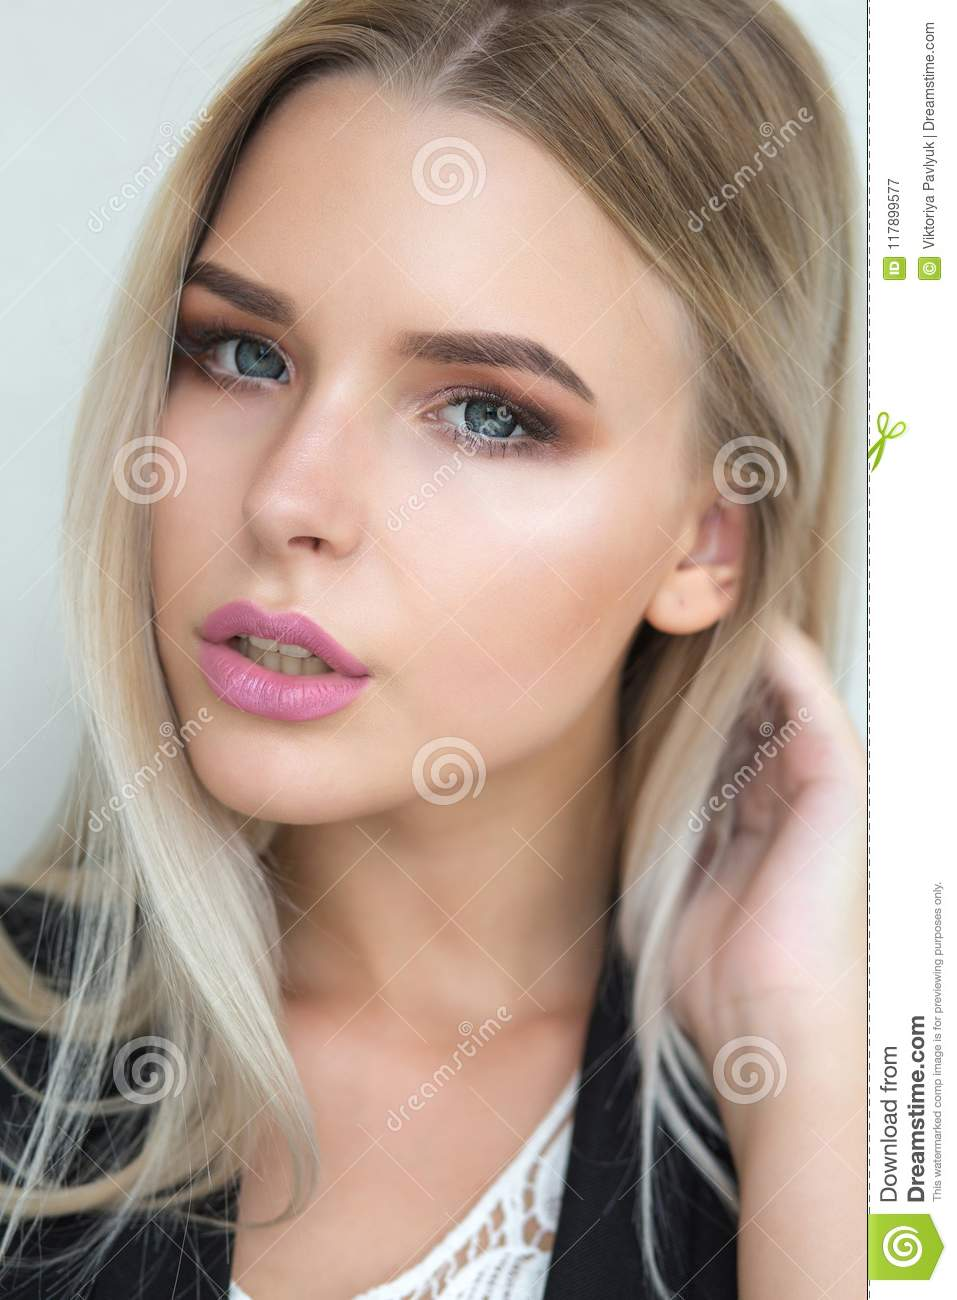 ff4ae4c7962 Seductive young blonde model with natural makeup and long straight hair